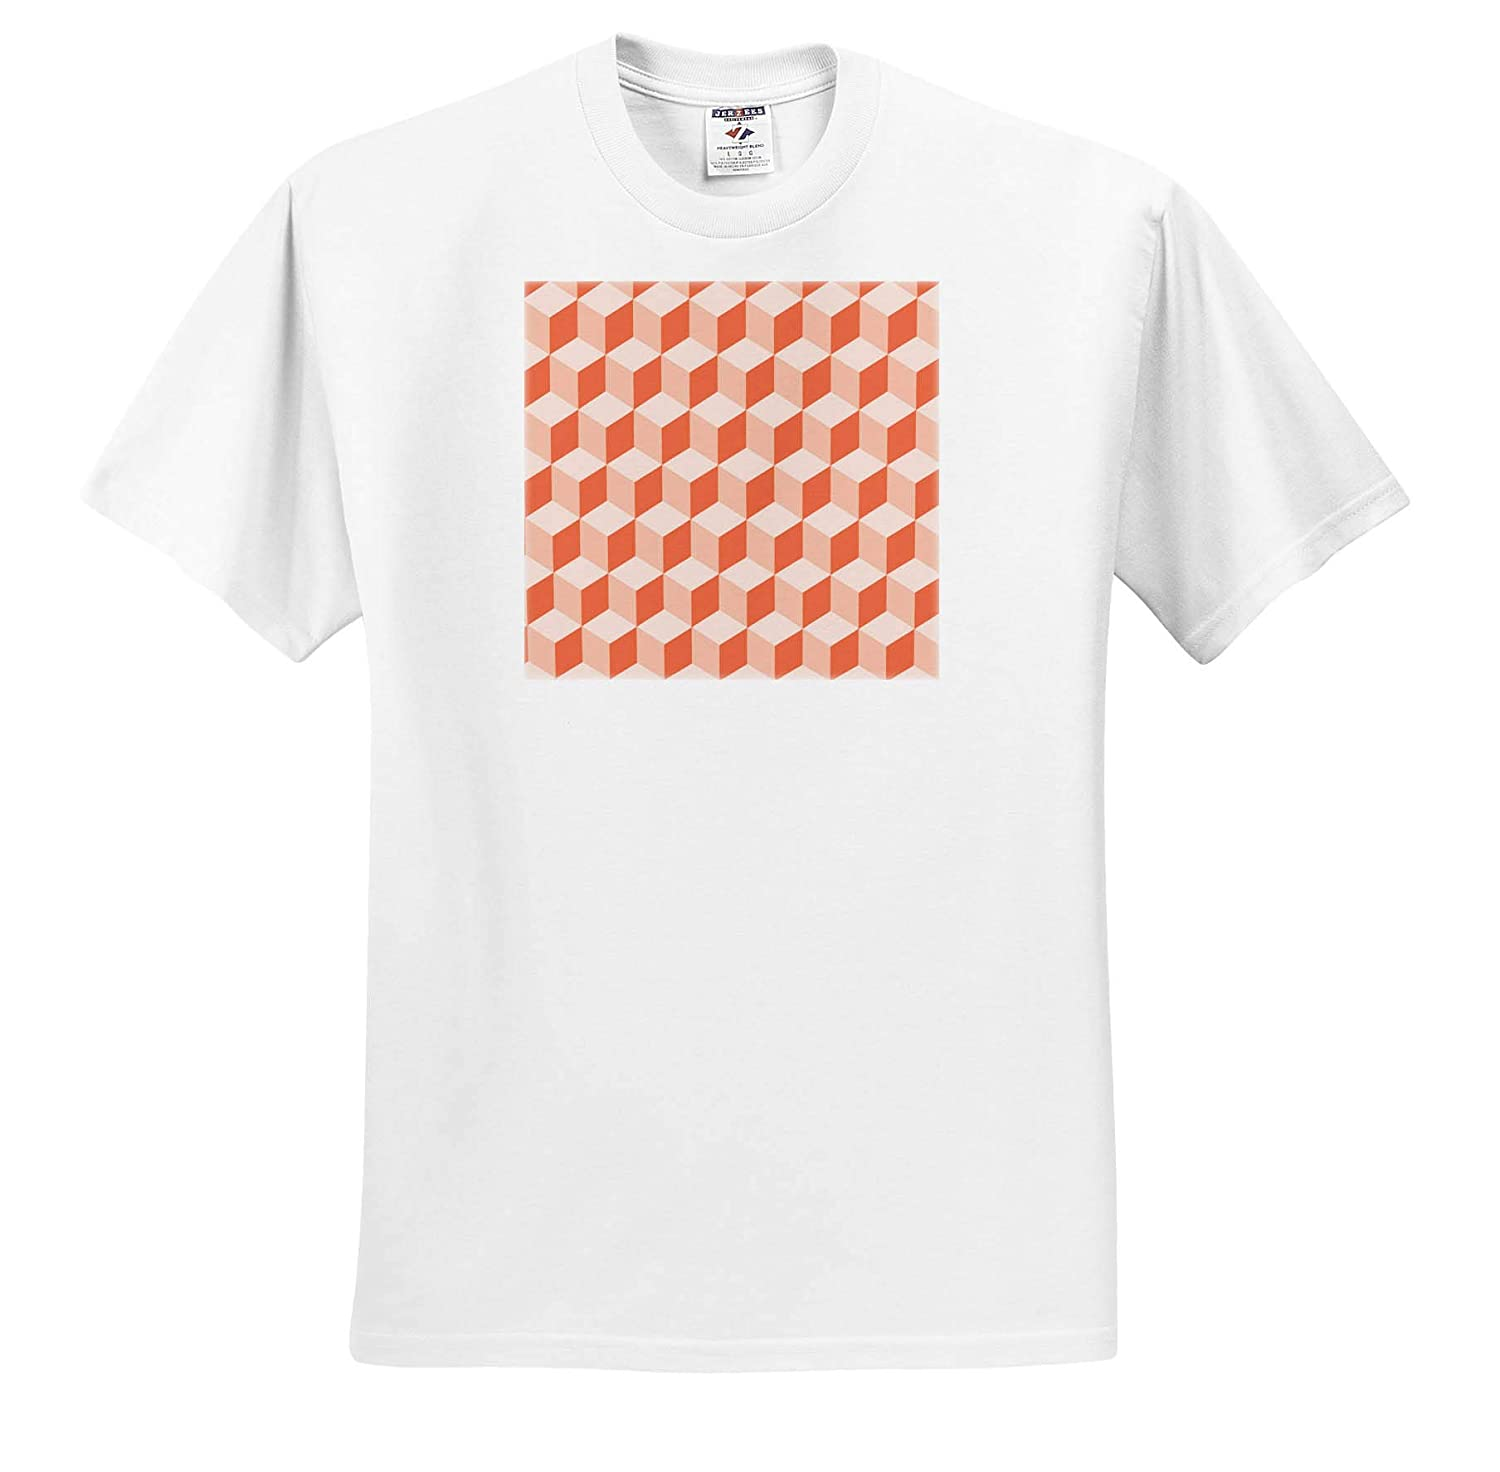 Digital Art Abstract Pattern Diamond Repeating Pattern in Living Coral 3dRose Taiche T-Shirts